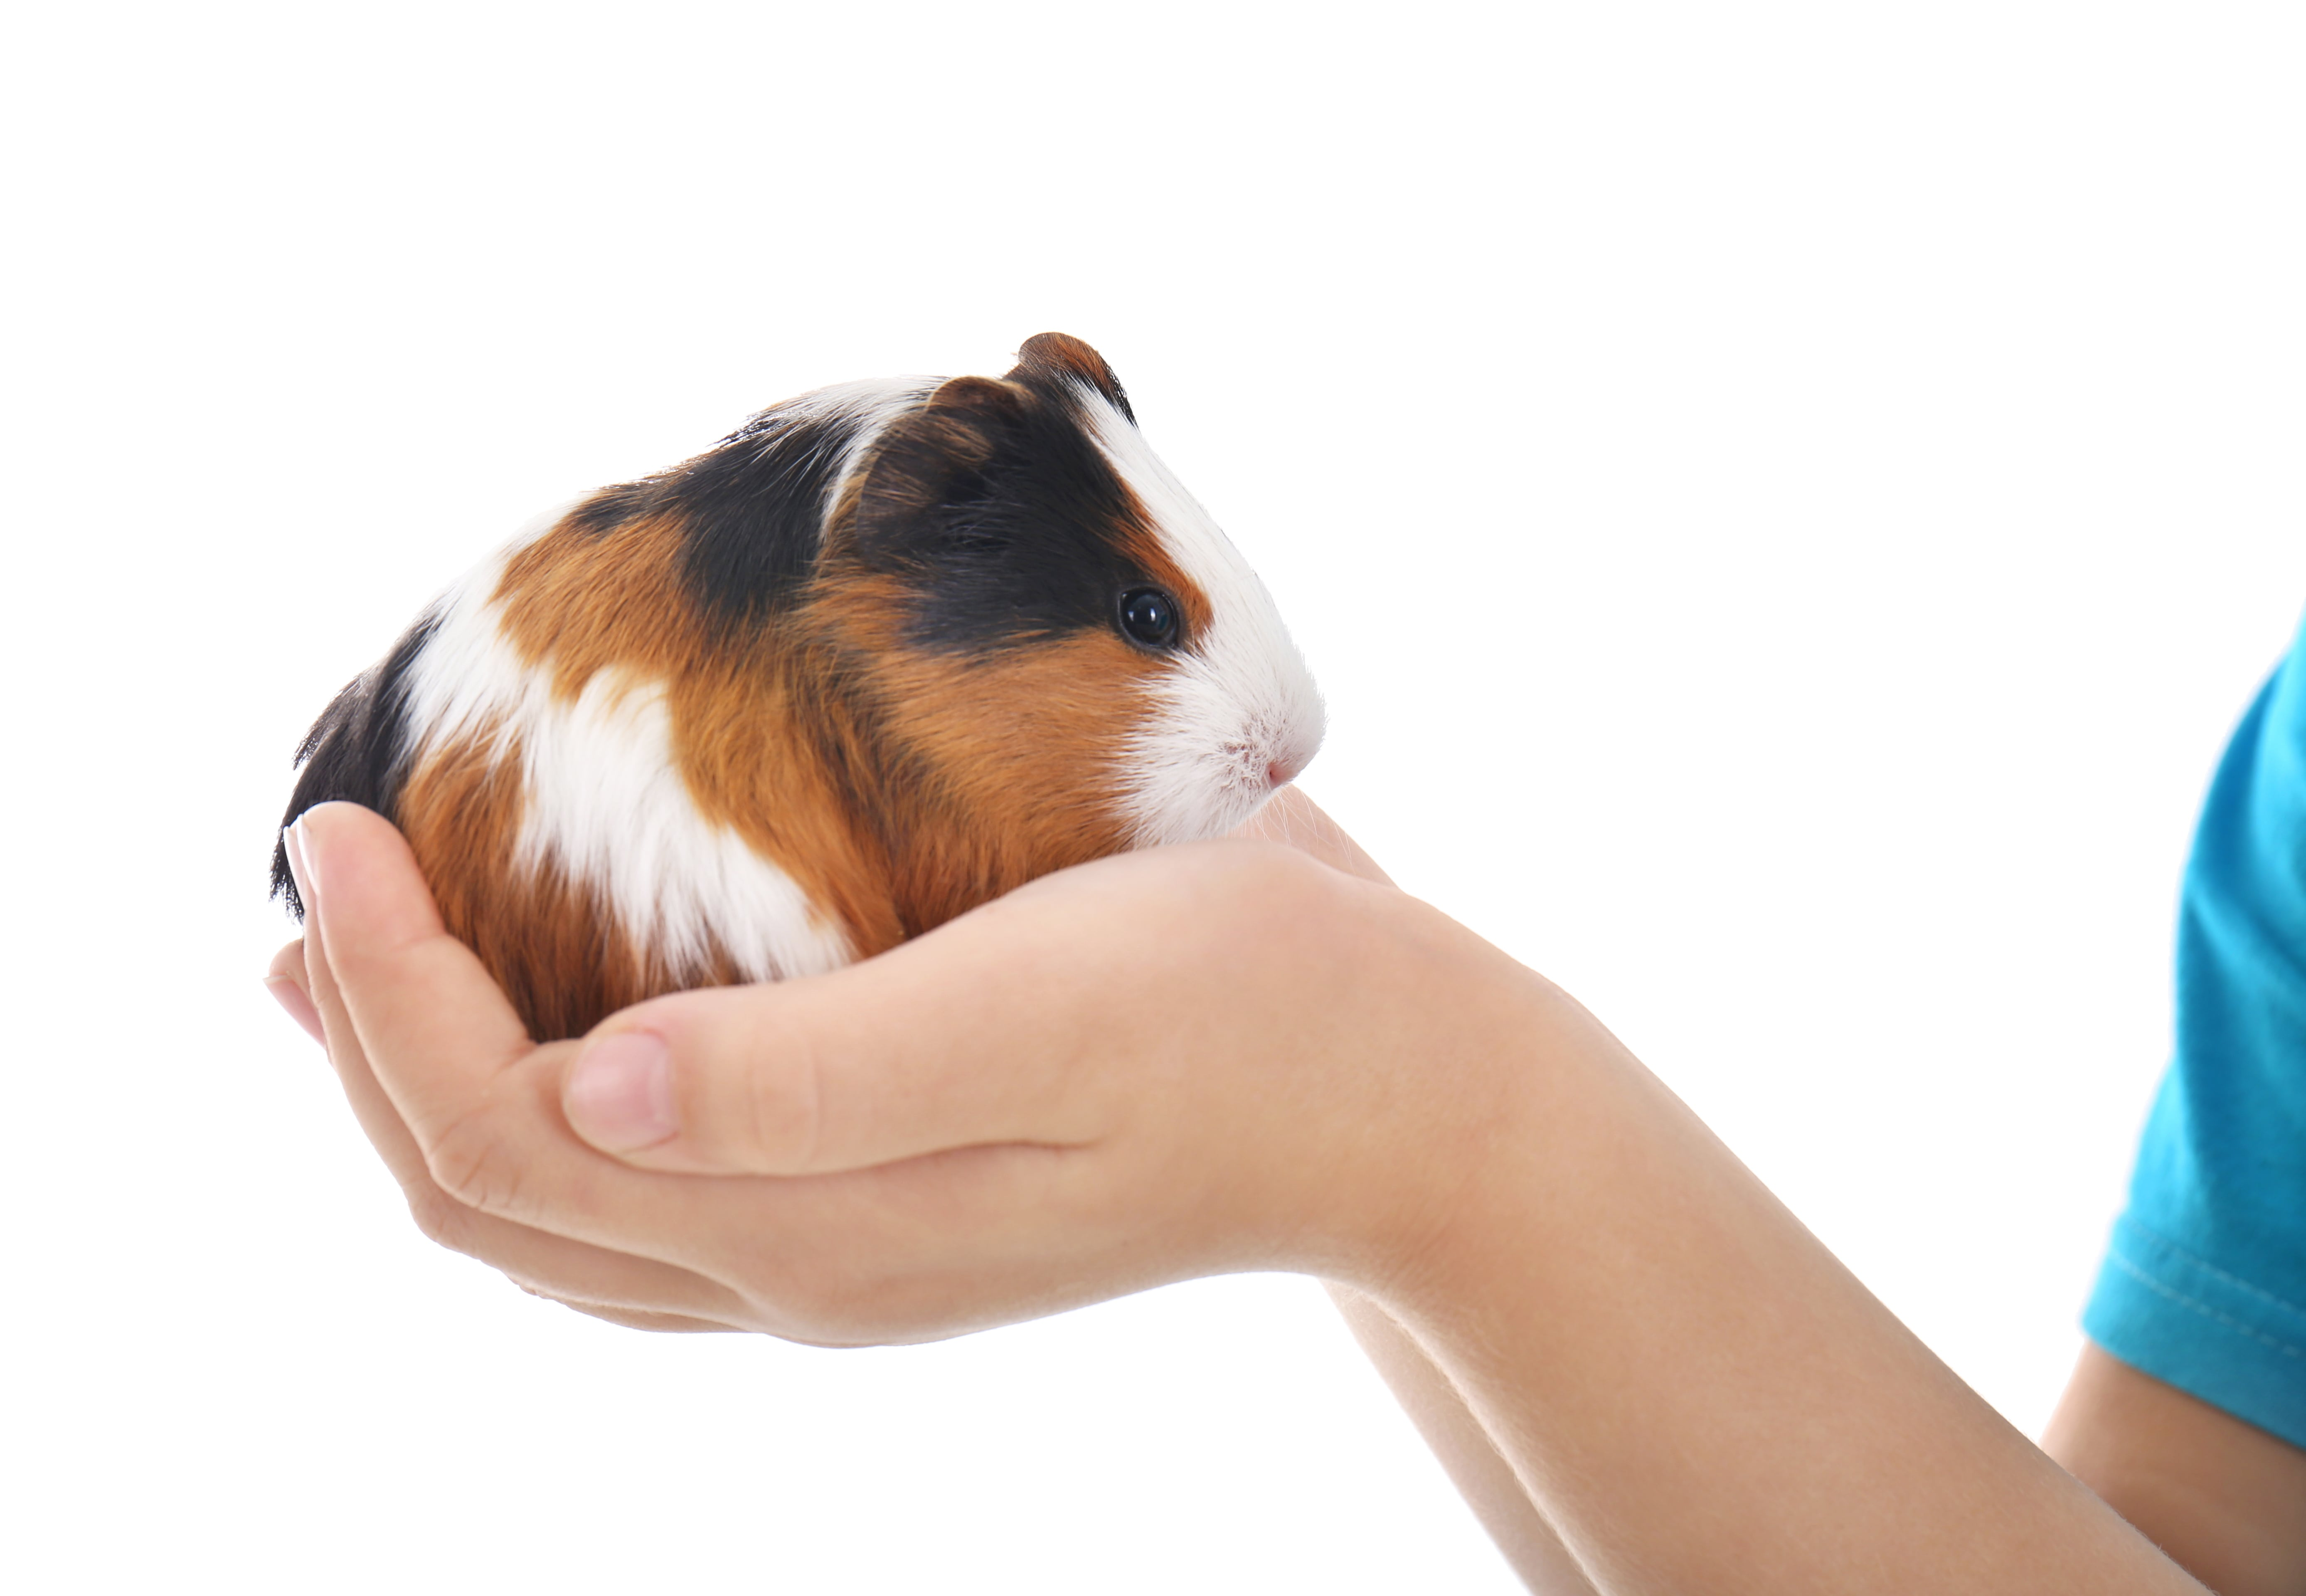 A cute guinea pig in a hand showing the daily pats and cuddles we give!